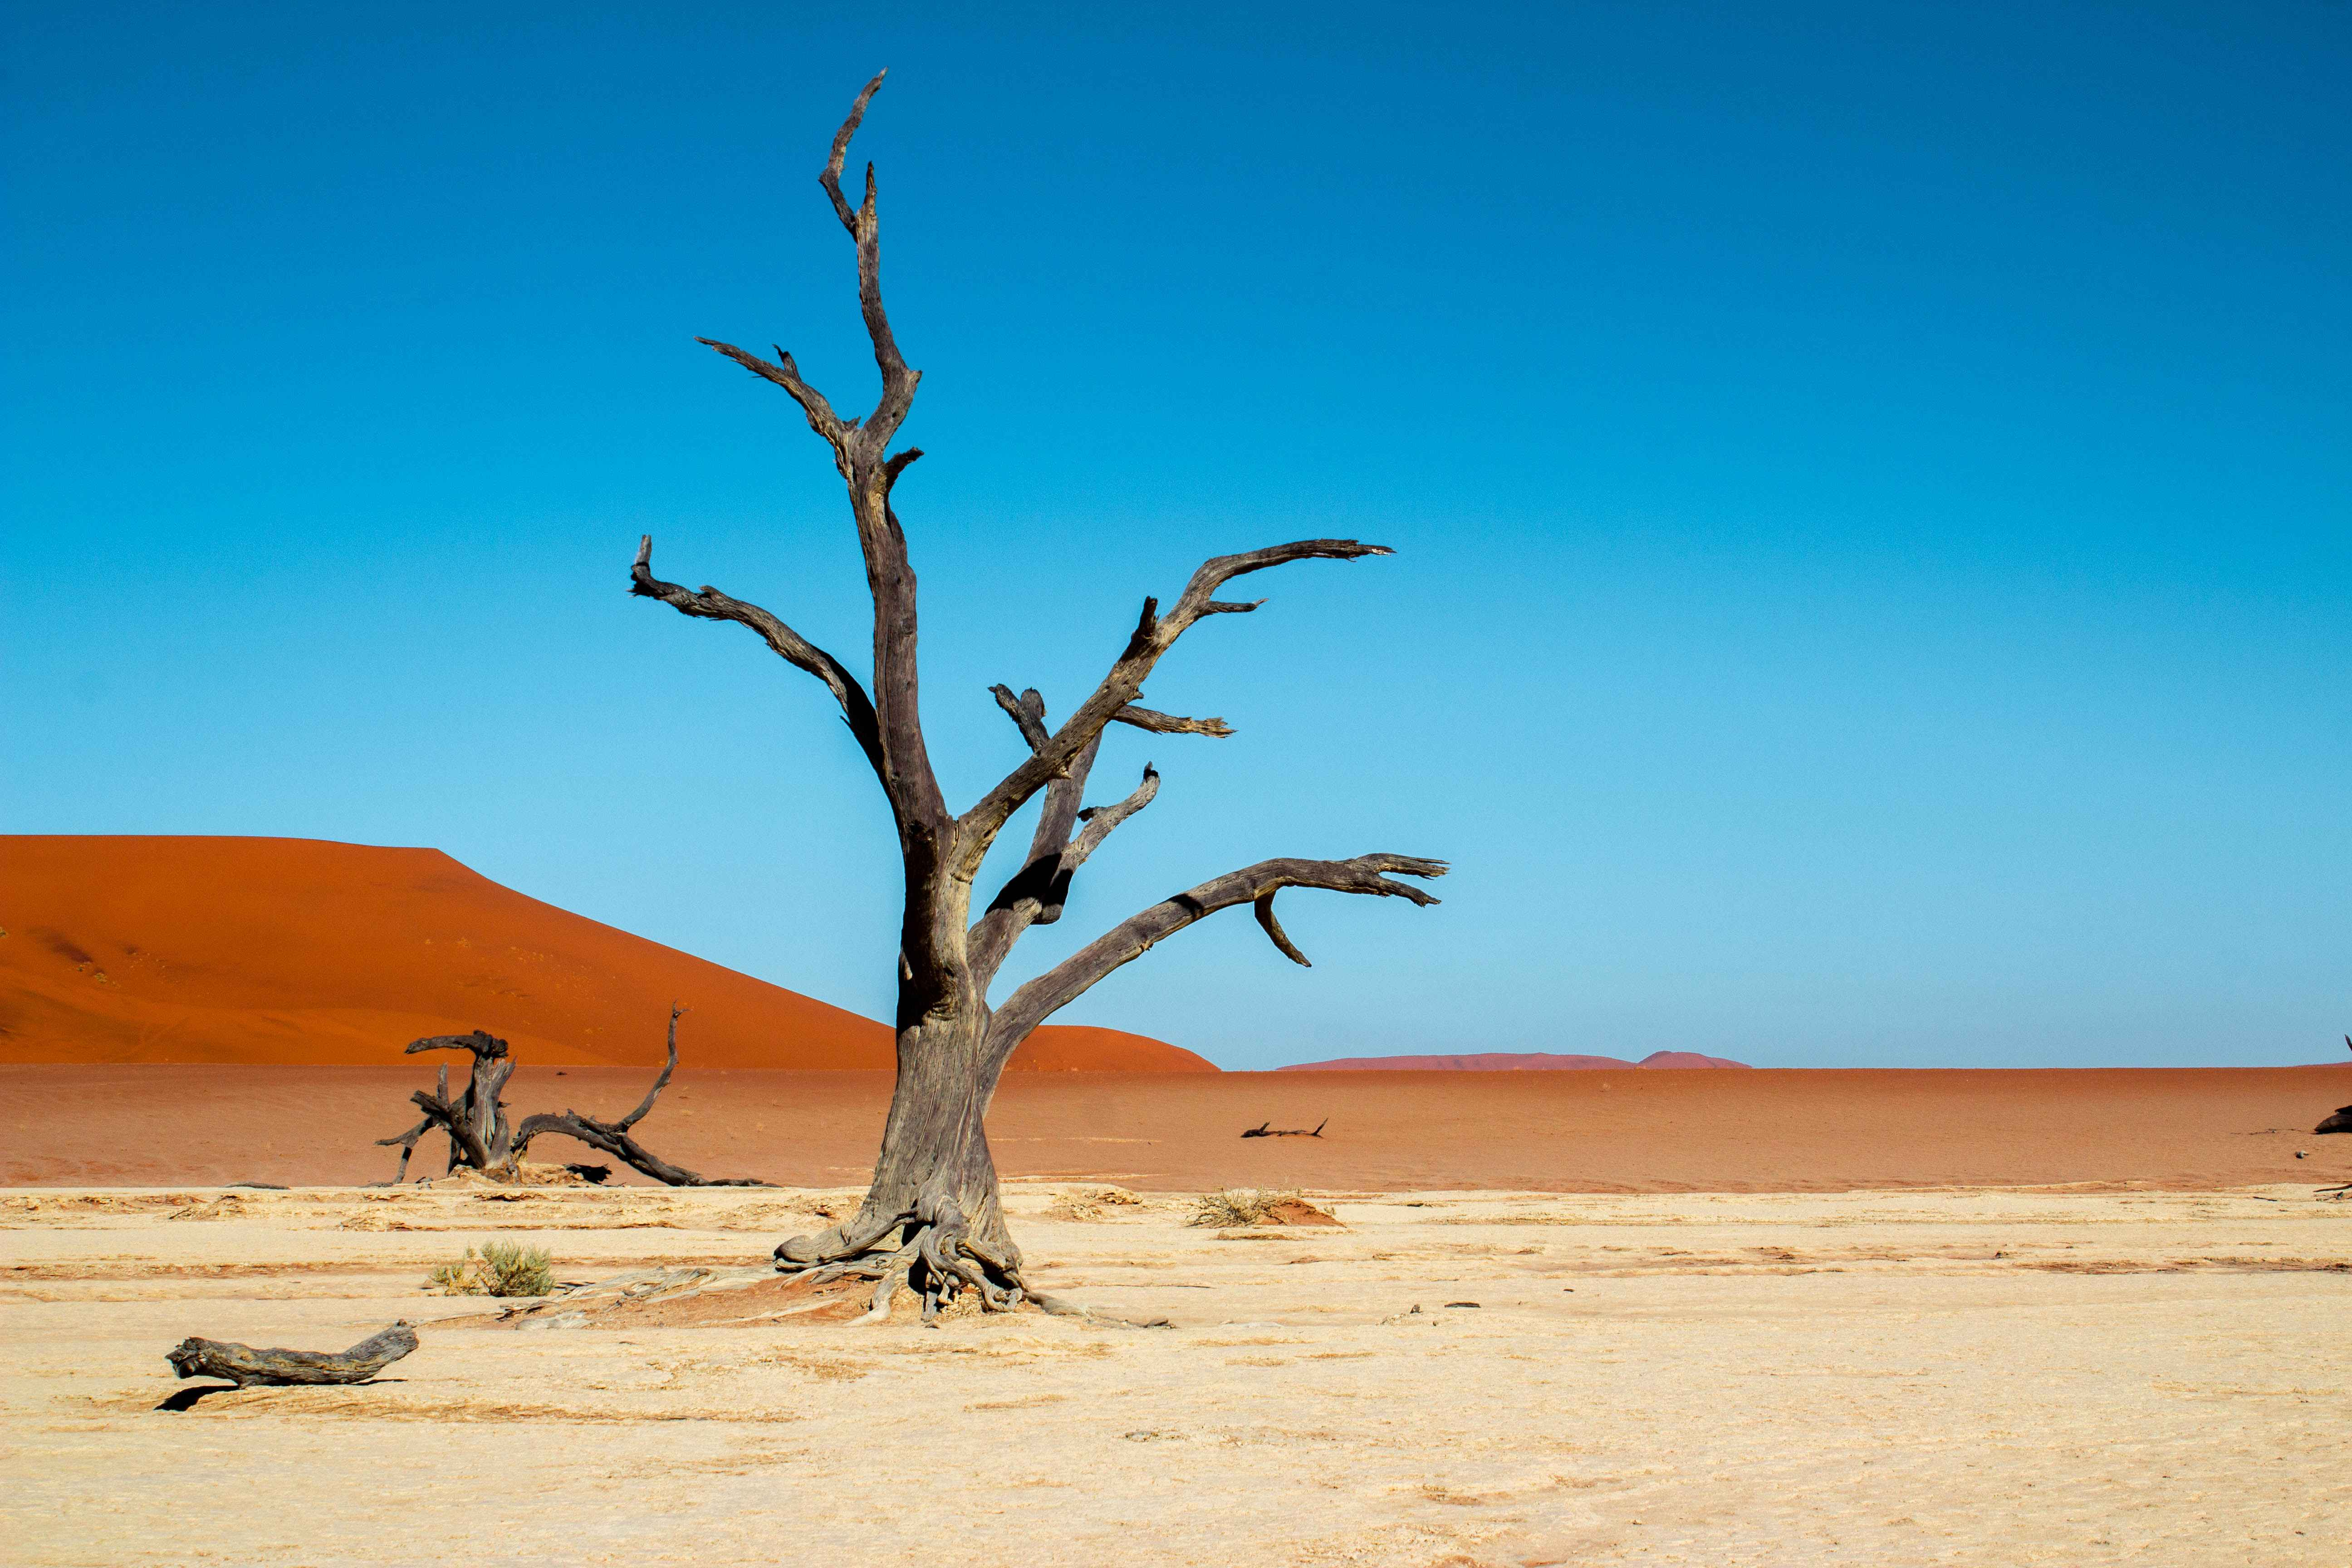 a starl, dead acacia tree stands by itself on a salt pan in the middle of the namibian desert, with dark orange sand dunes in the background